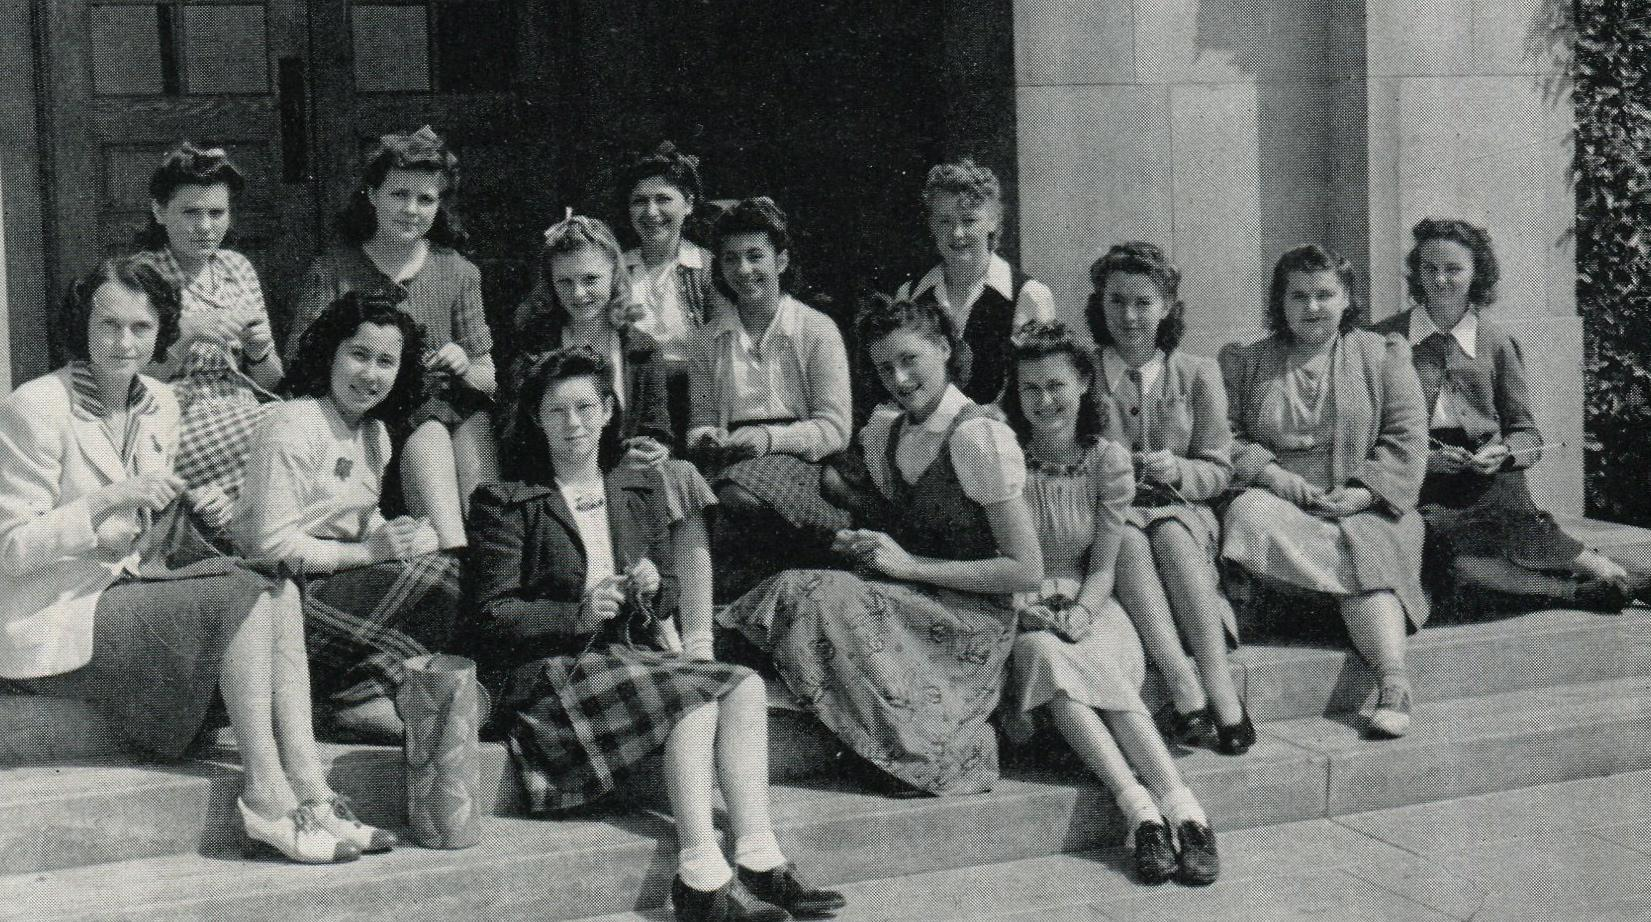 Girls of the 40s